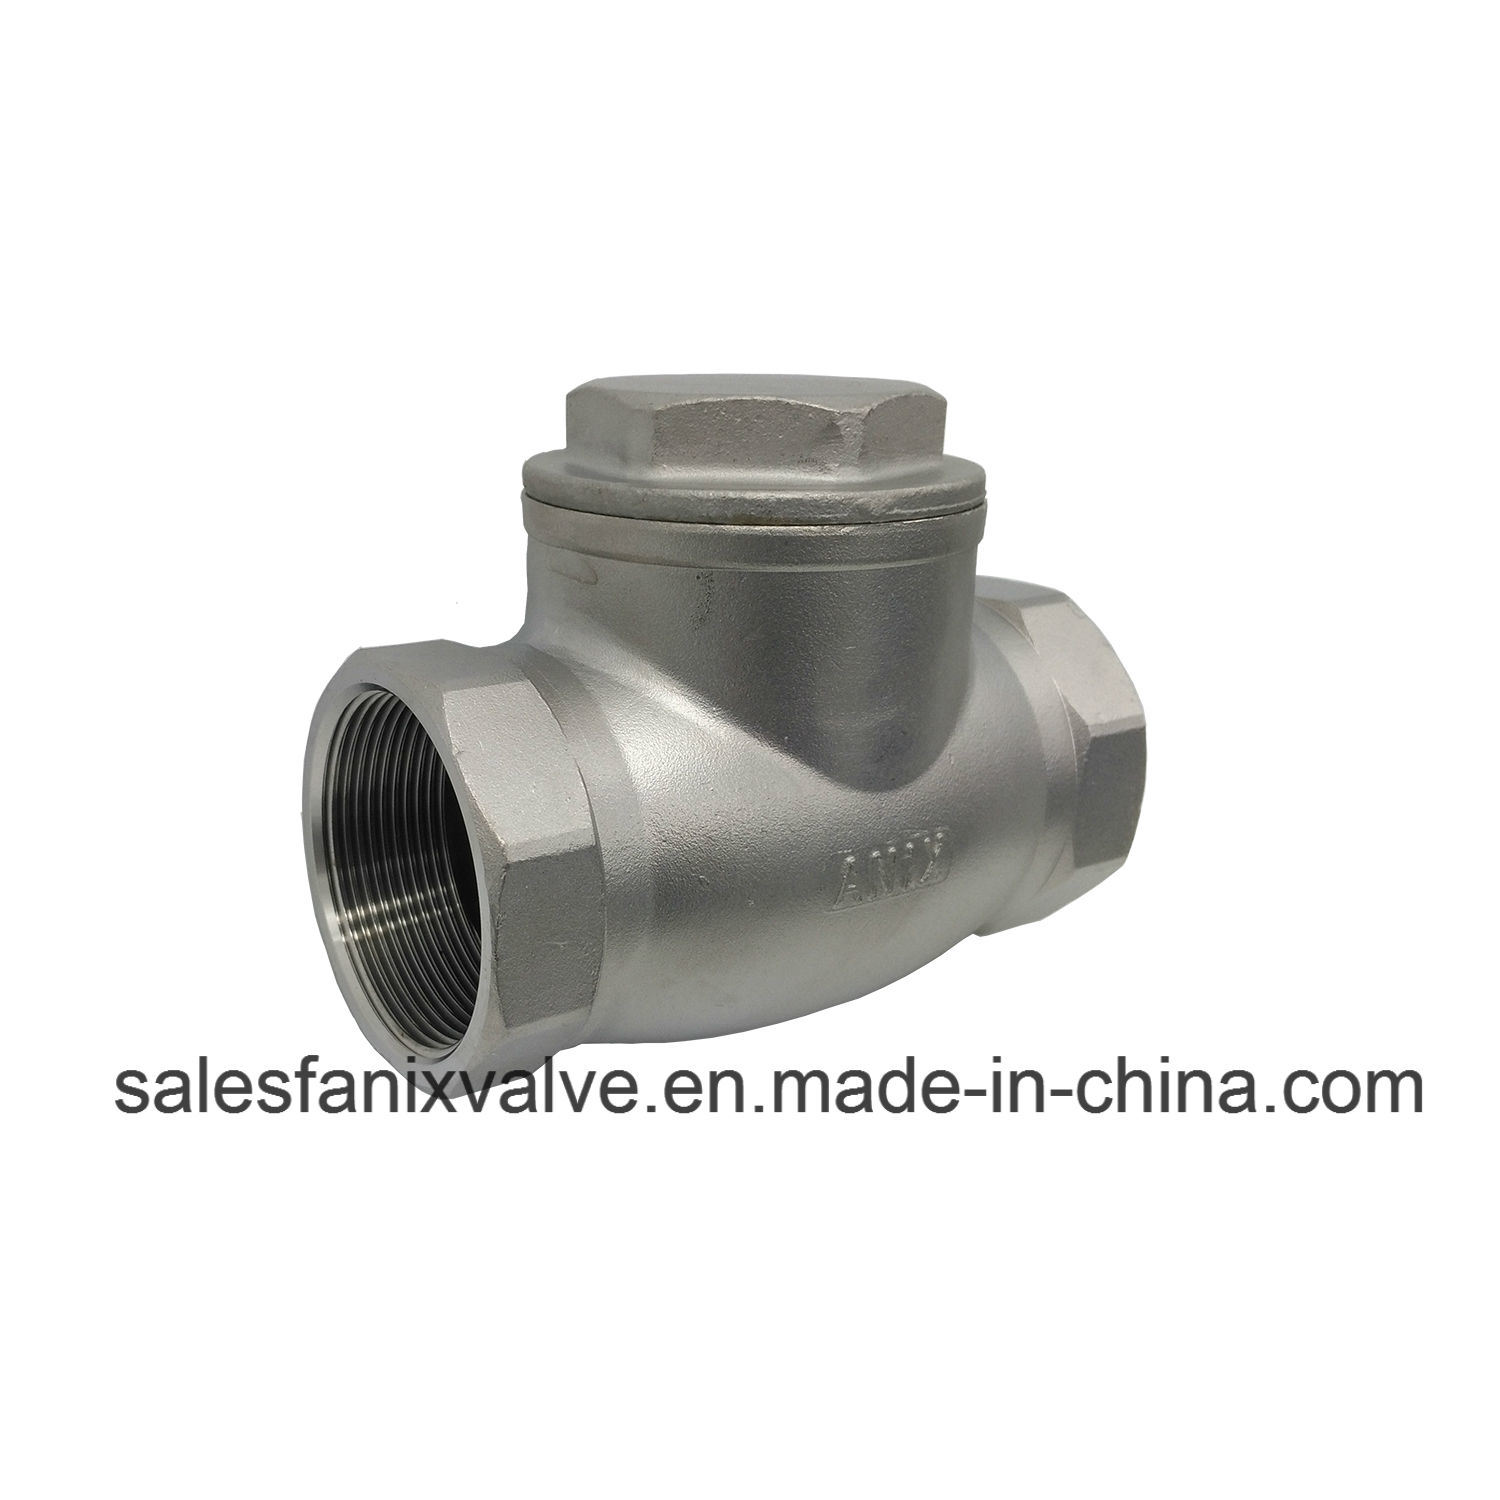 Stainless Steel Female Swing Check Valve (H14)